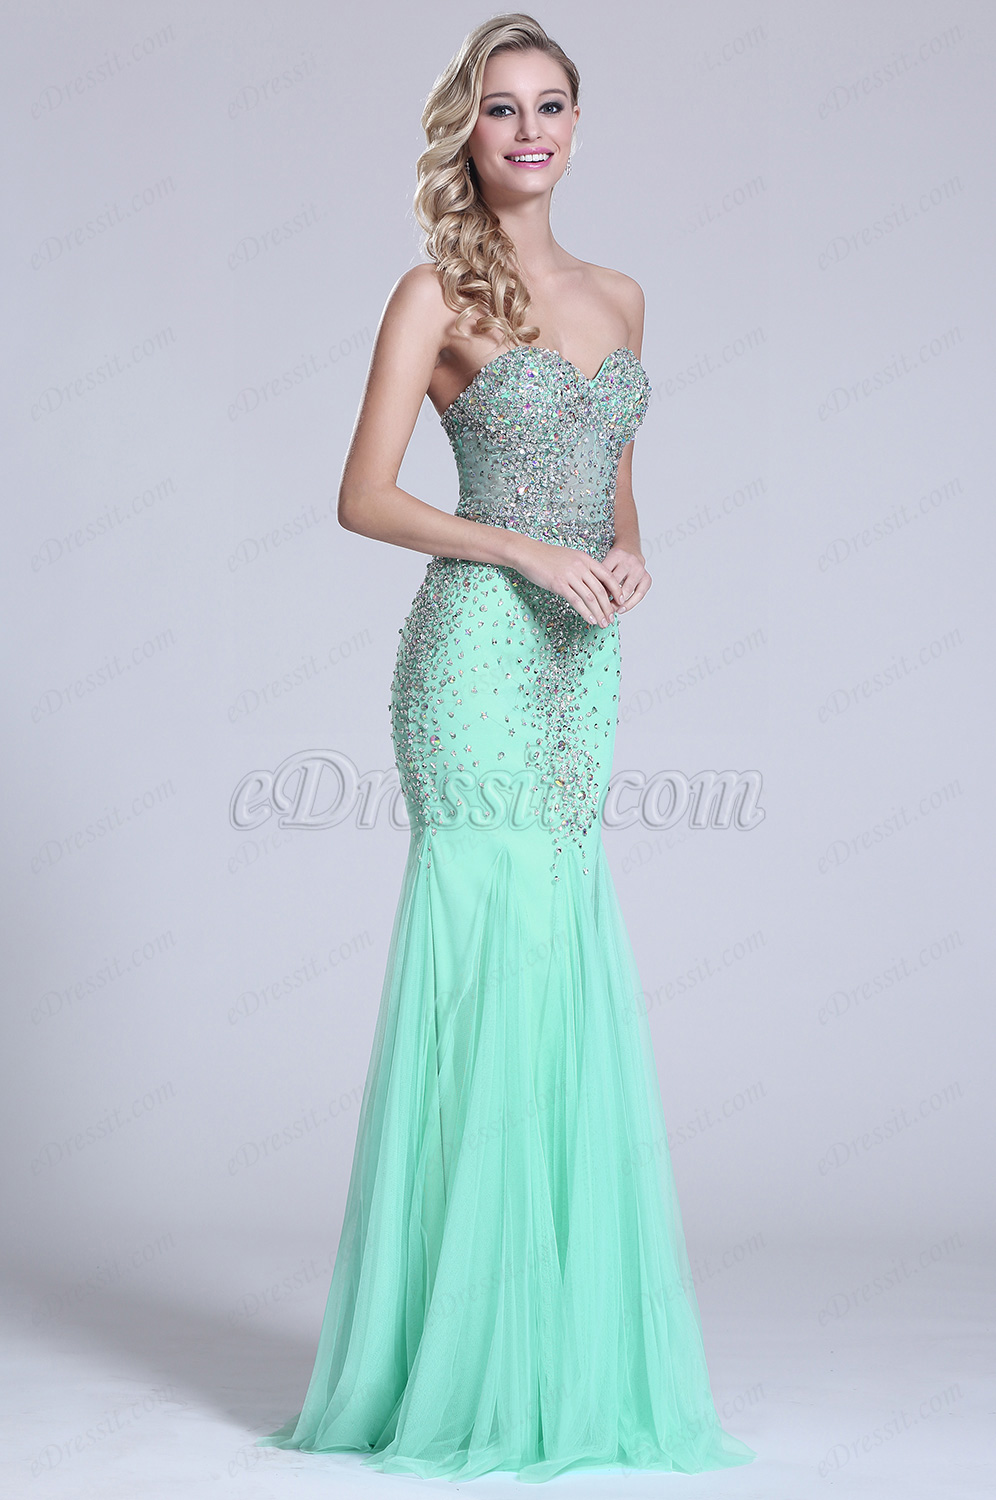 SIMPLE ELEGANCE: How to Find Cheap and Quality Prom Dresses